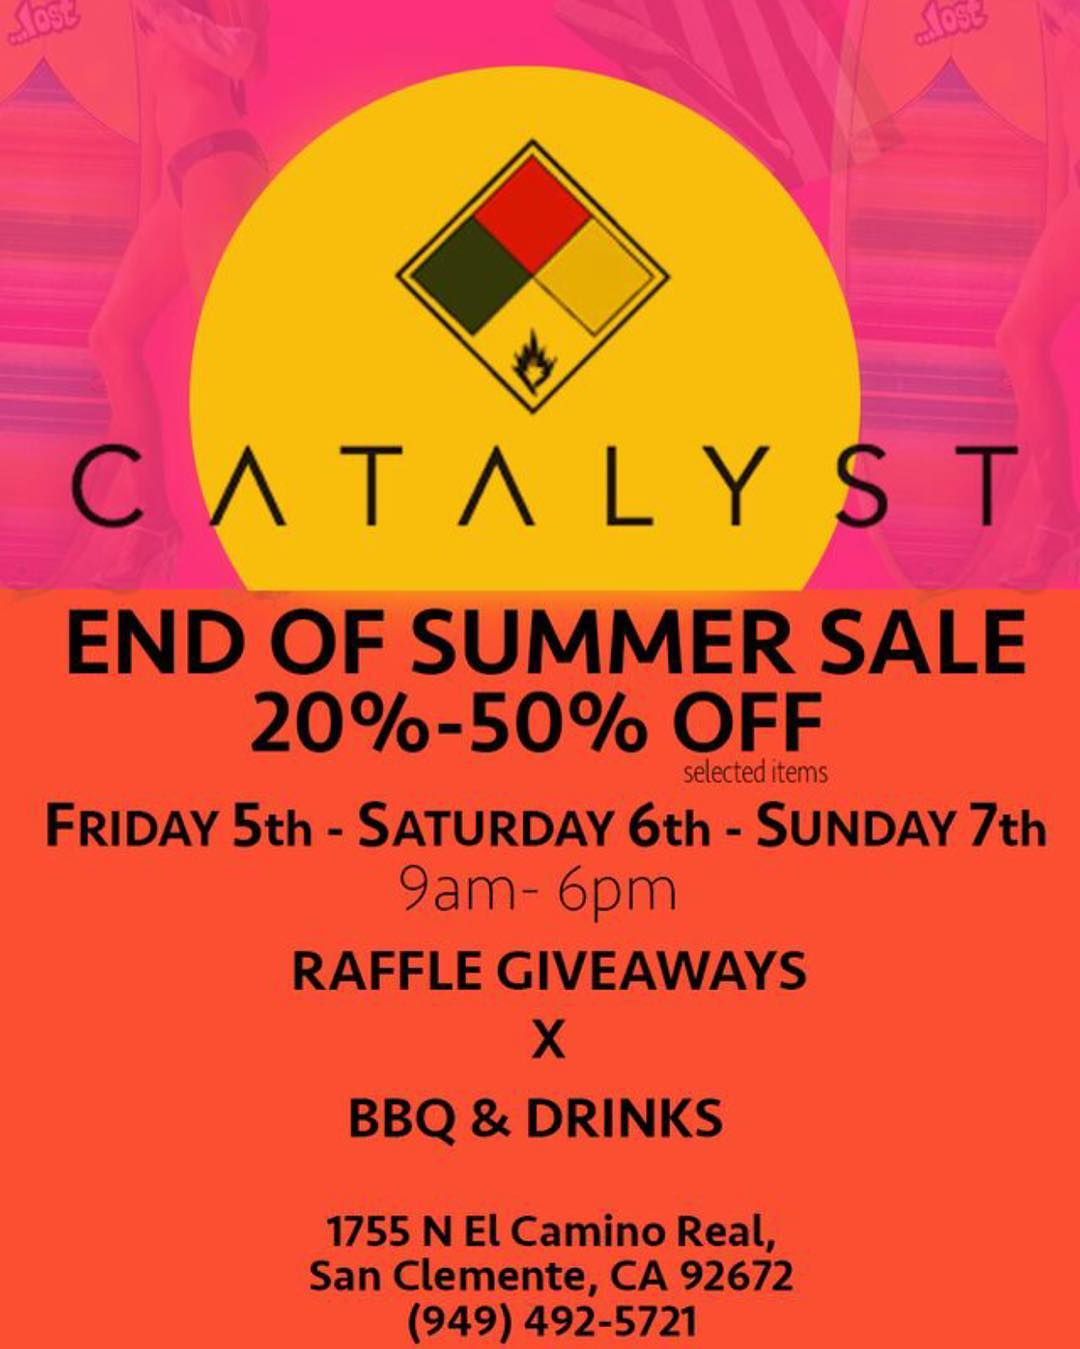 Catalyst end of summer sale in San Clemente, California. Now through the weekend! 20-50% OFF